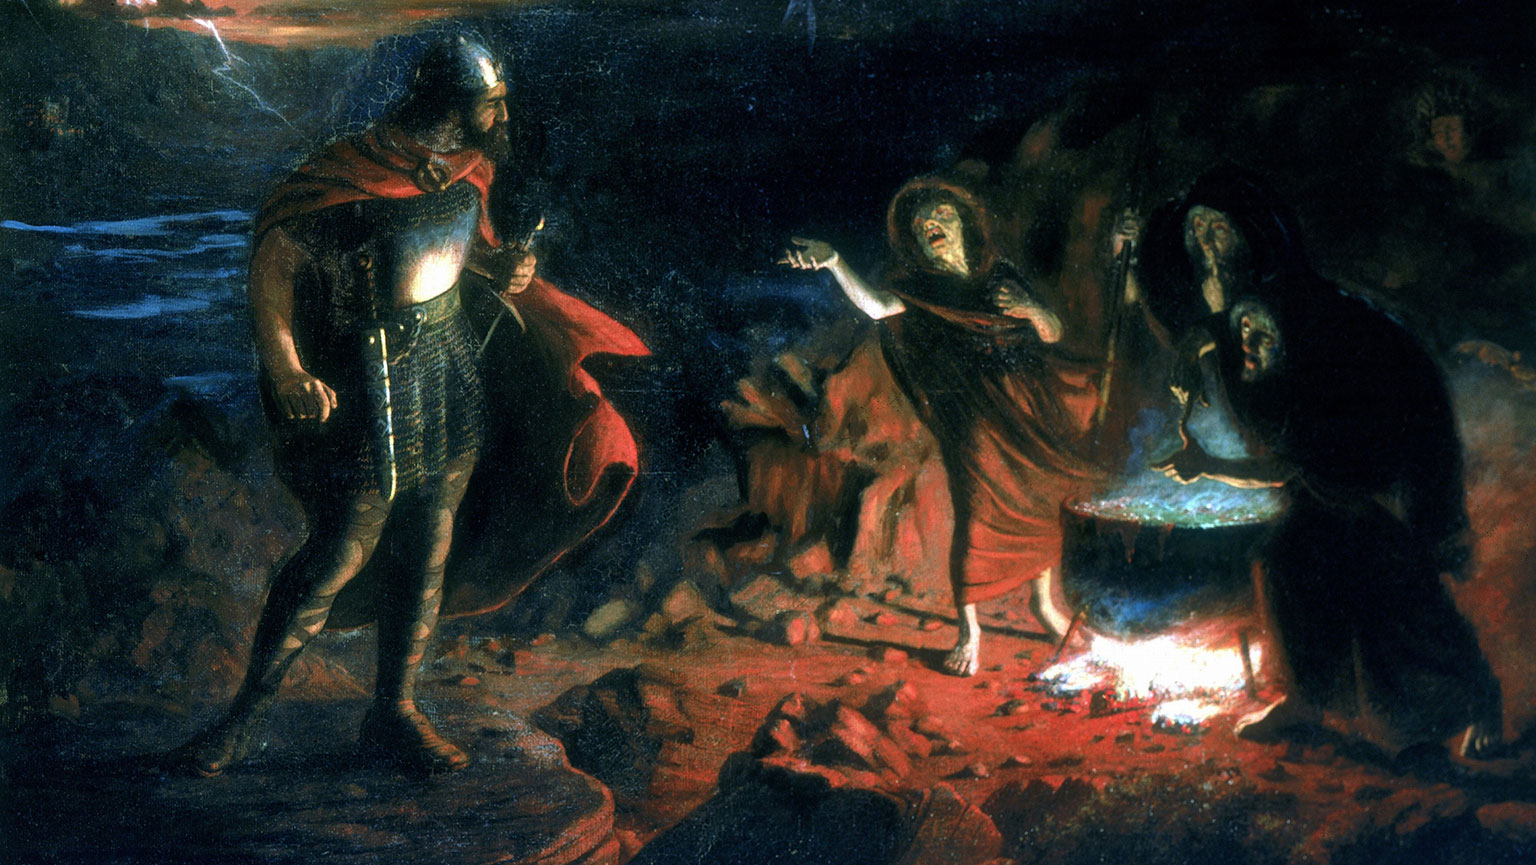 an analysis of the characters of the witches in the play macbeth by william shakespeare Macbeth is a scottish general and the thane of glamis who is led to wicked thoughts by the prophecies of the three witches, especially after their prophecy that he will be made thane of cawdor comes true.